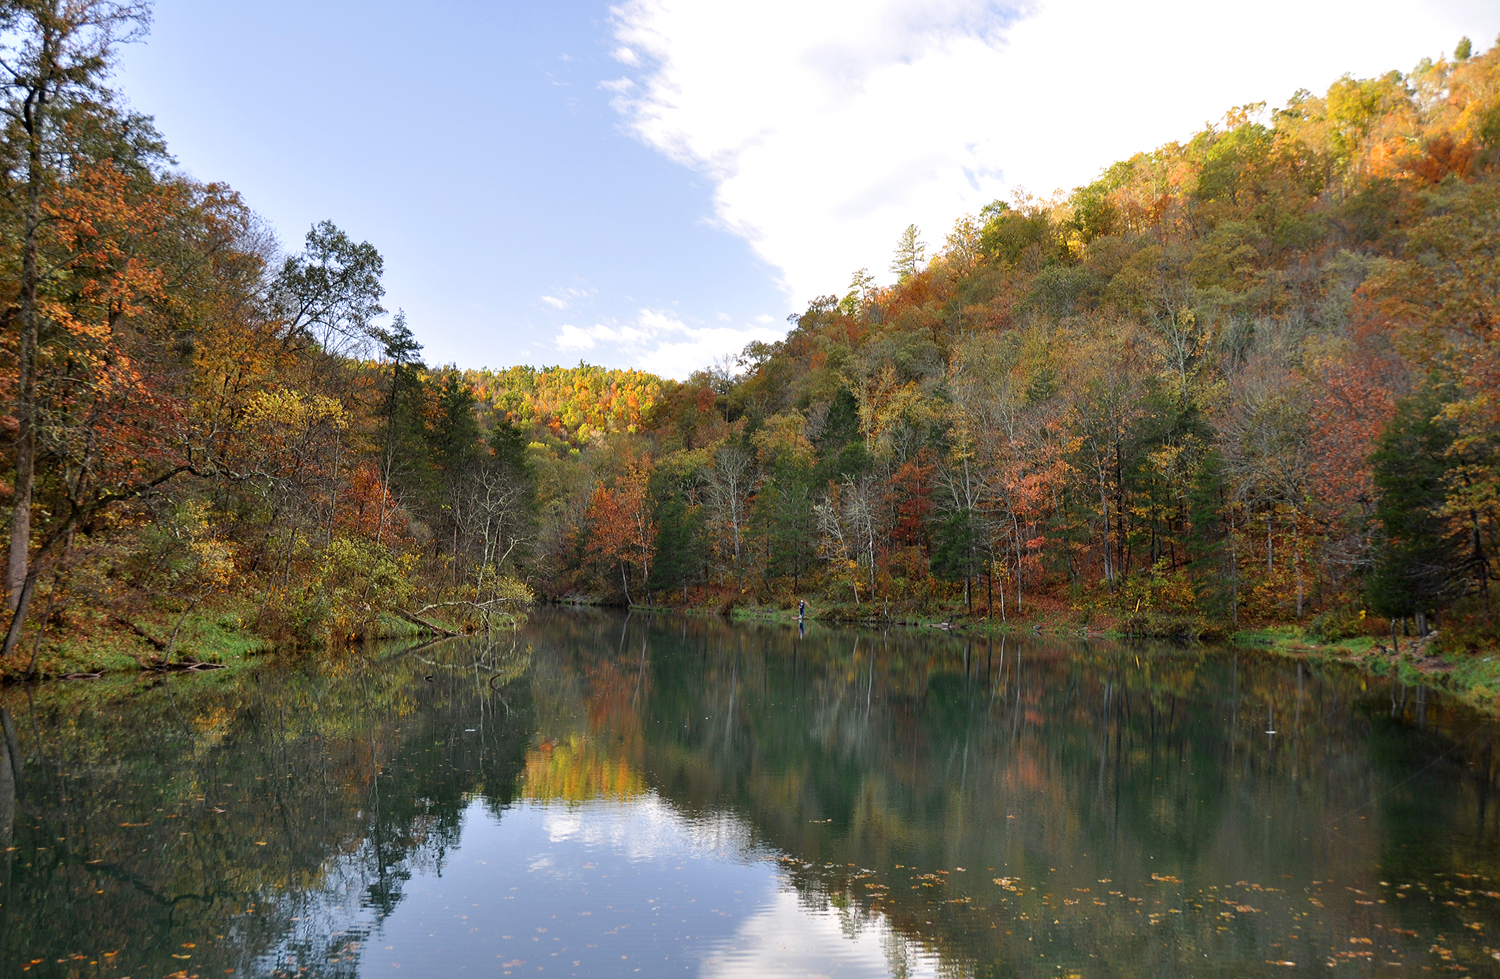 Mirror Lake at Blanchard Springs Caverns Recreation Area. Taken 10/26/2010.